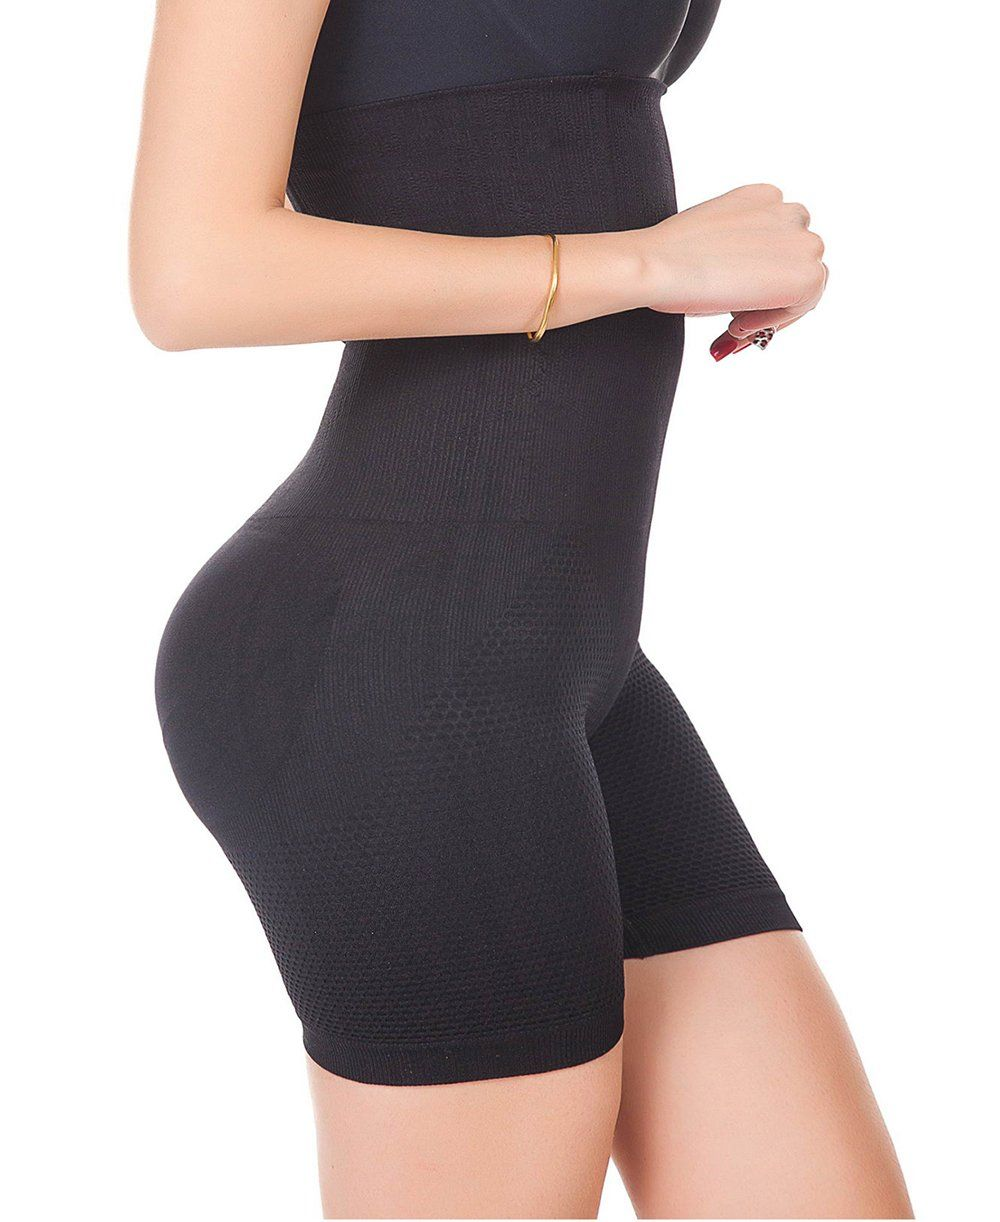 b8baec1745c12 LYZ Womens Shapewear Bodysuit High Waist Seamless Strapless Tummy Control  Thigh Slimmer Shorts     Read more at the image link. (Note Amazon  affiliate link)